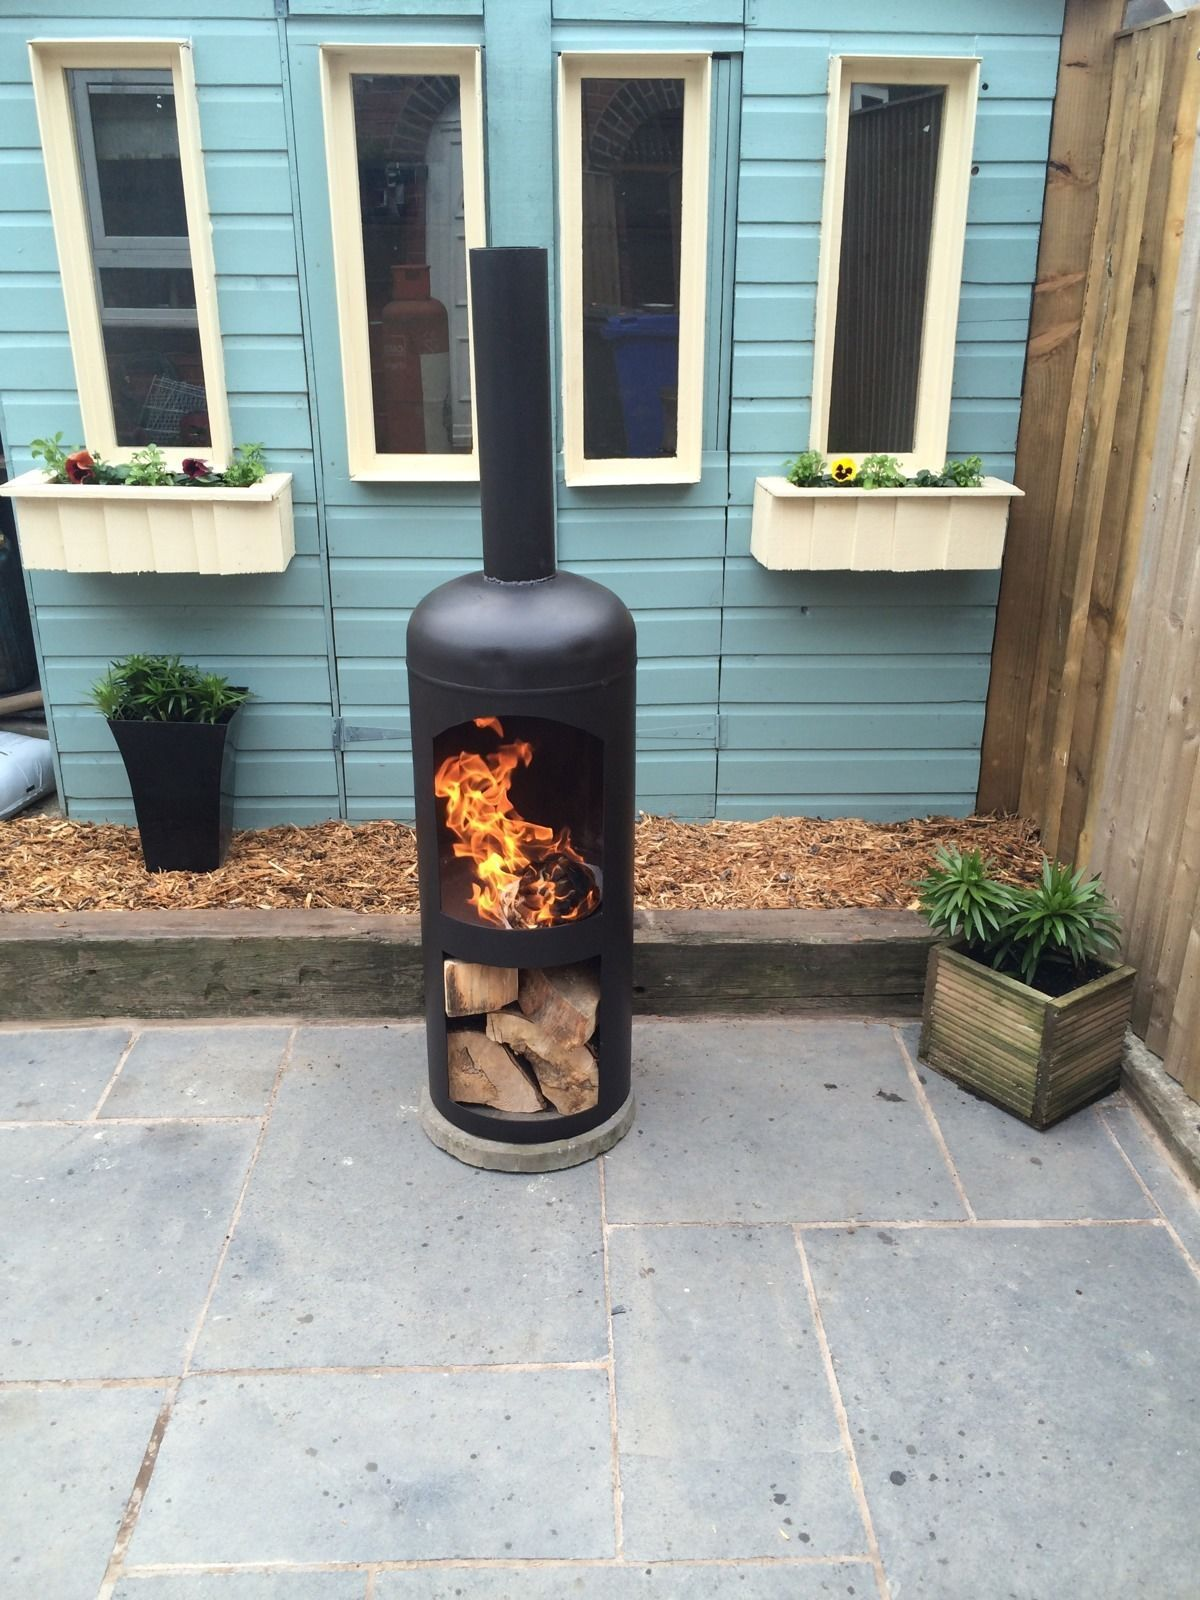 Chimenea Patio Garden Woodburner Log Woodburning stove Gas Bottle used  upcycle - Chimenea Patio Garden Woodburner Log Woodburning Stove Gas Bottle